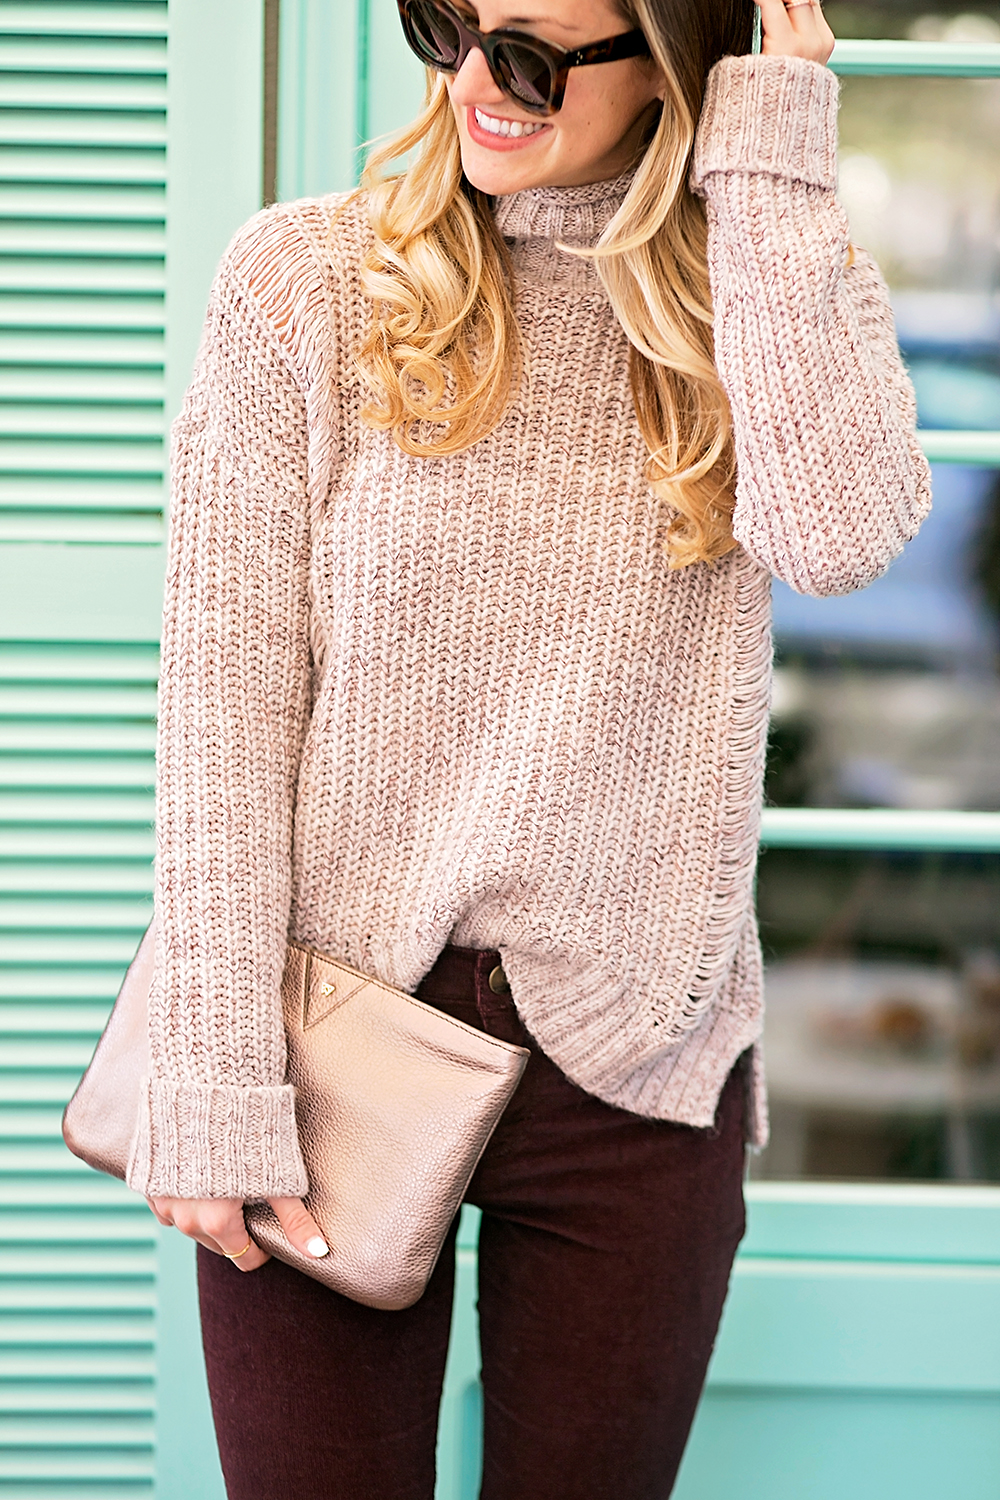 livvyland-blog-olivia-watson-express-cyber-monday-sweater-sale-lauren-vandiver-vandi-fair-cozy-outfit-friend-date-elizabeth-street-cafe-1